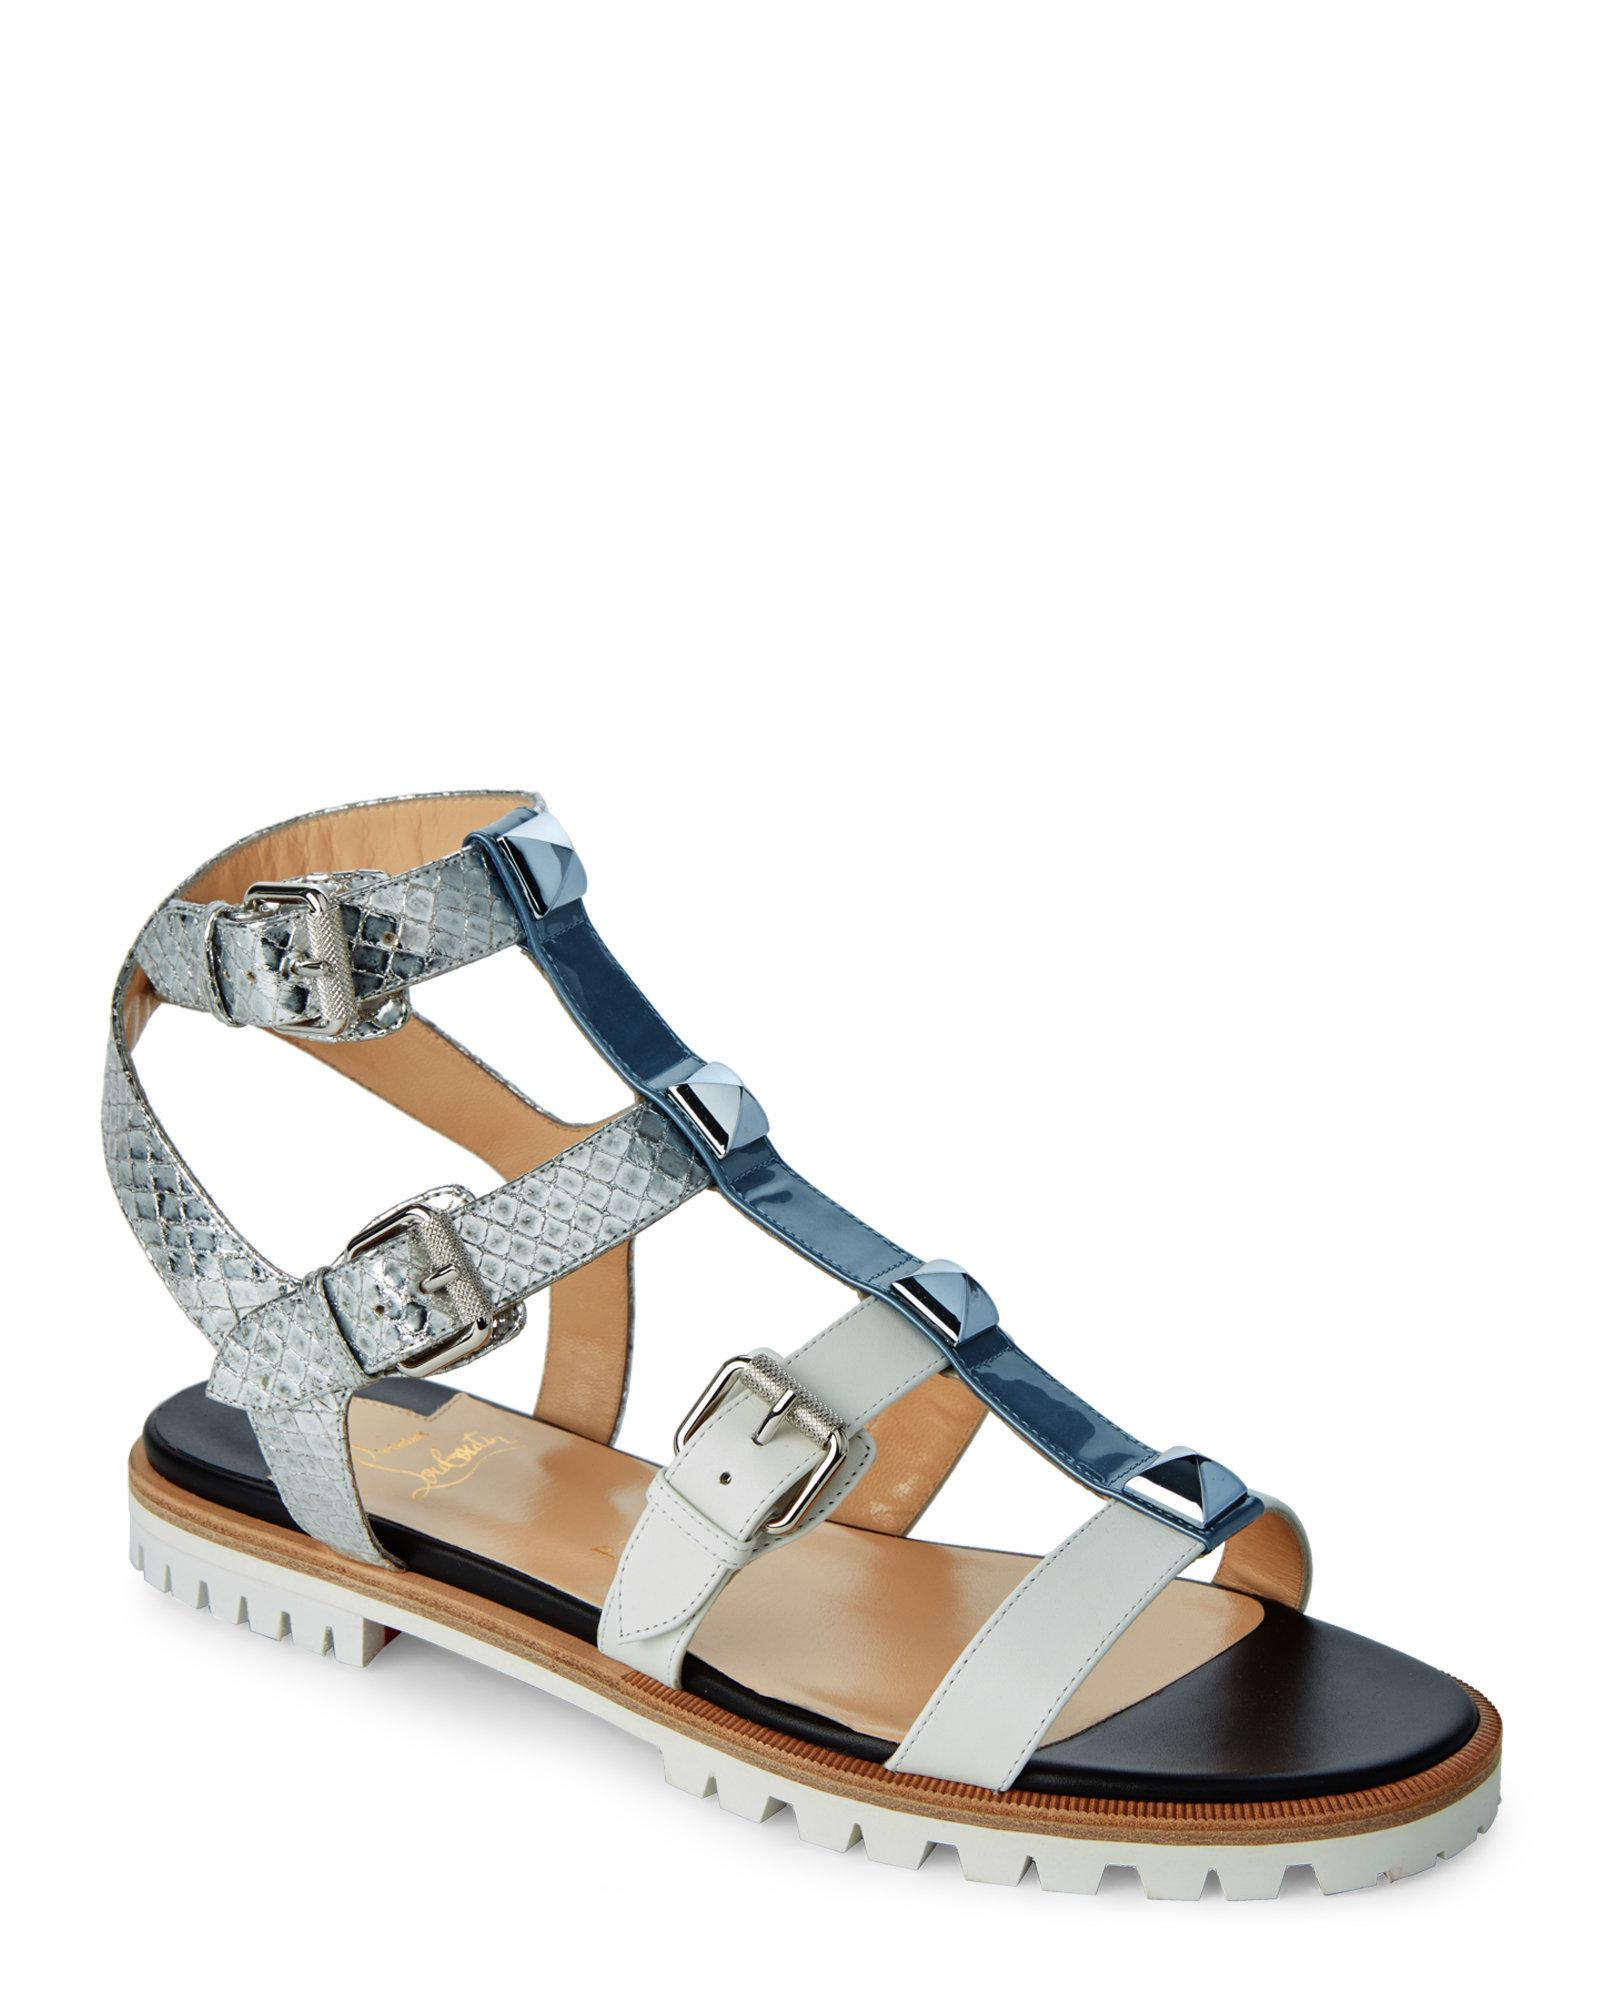 Christian Louboutin Thong Buckle Sandals clearance best 2ujC5sv27